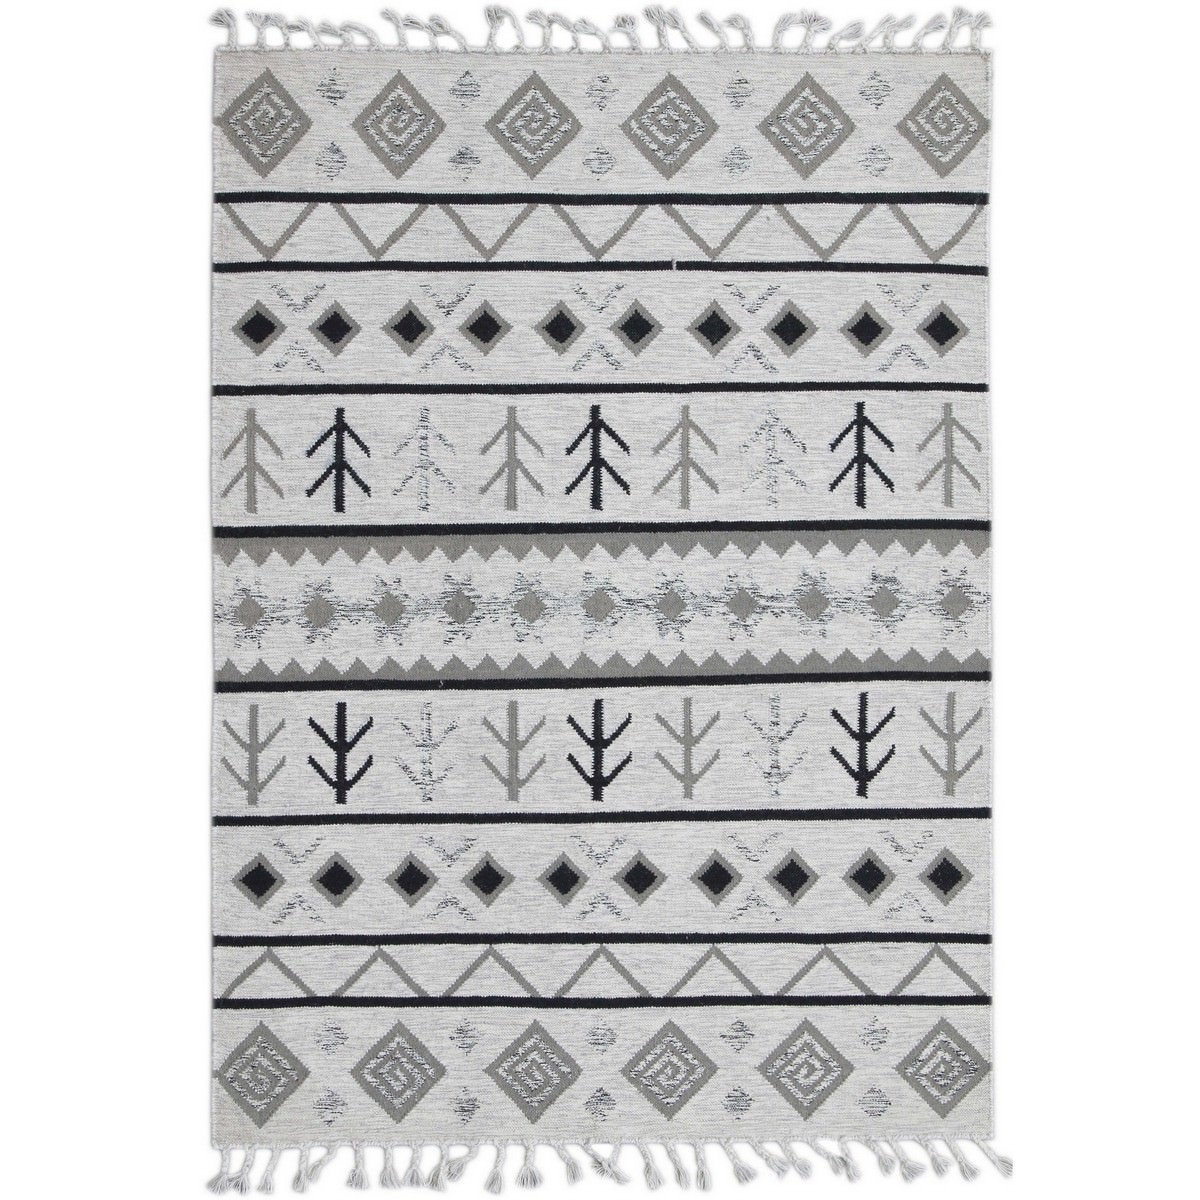 Artifact Handwoven Wool Rug , 190x280cm, Ivory